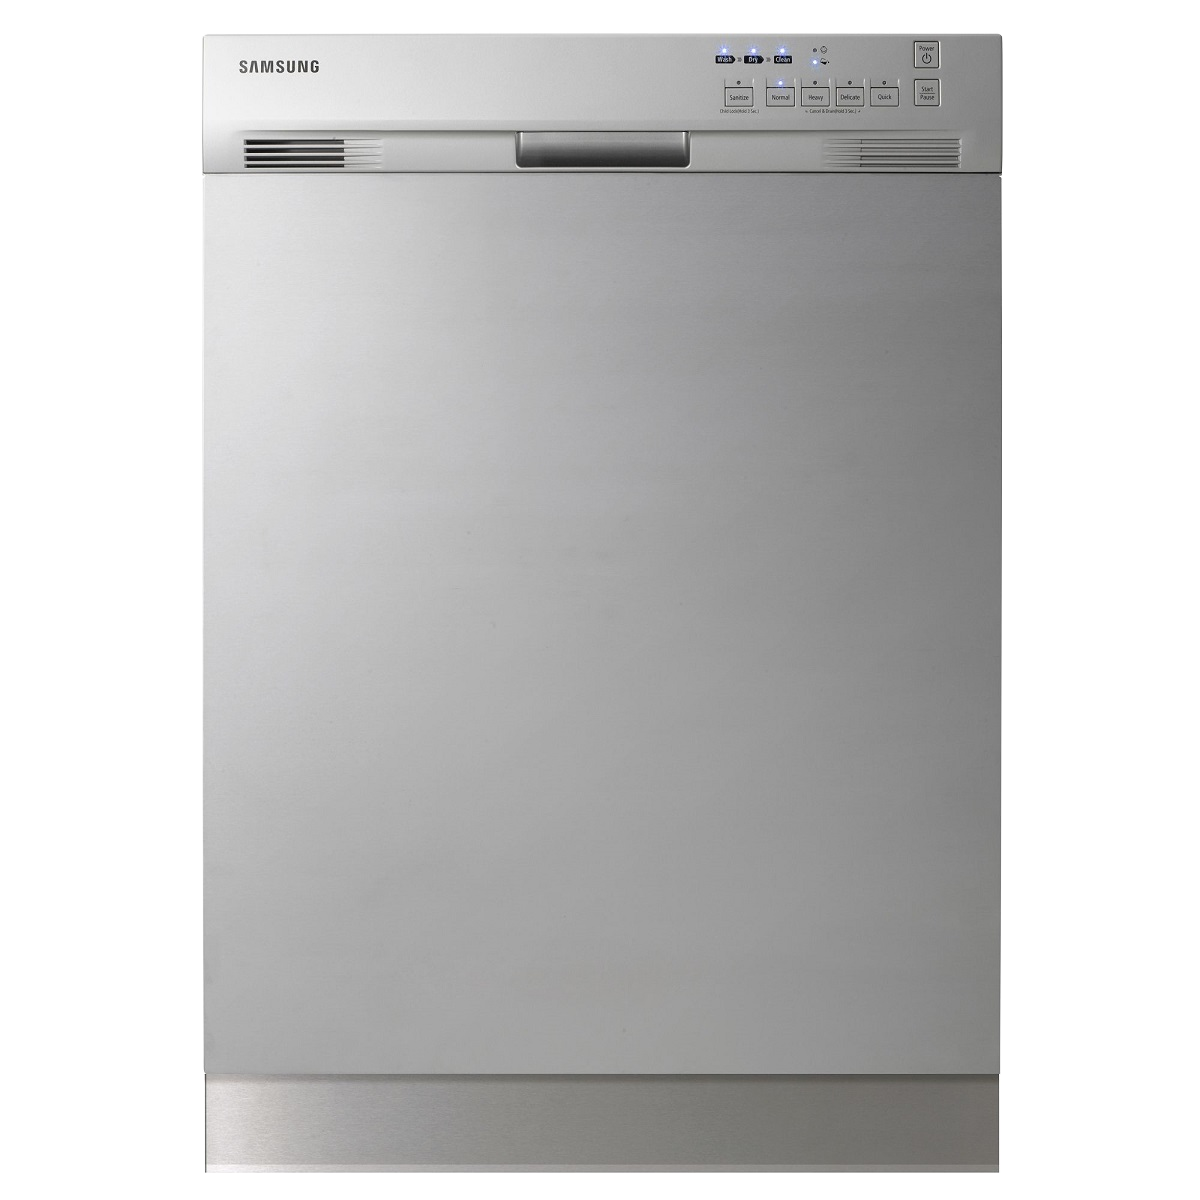 Bay Area Samsung Appliance Repair